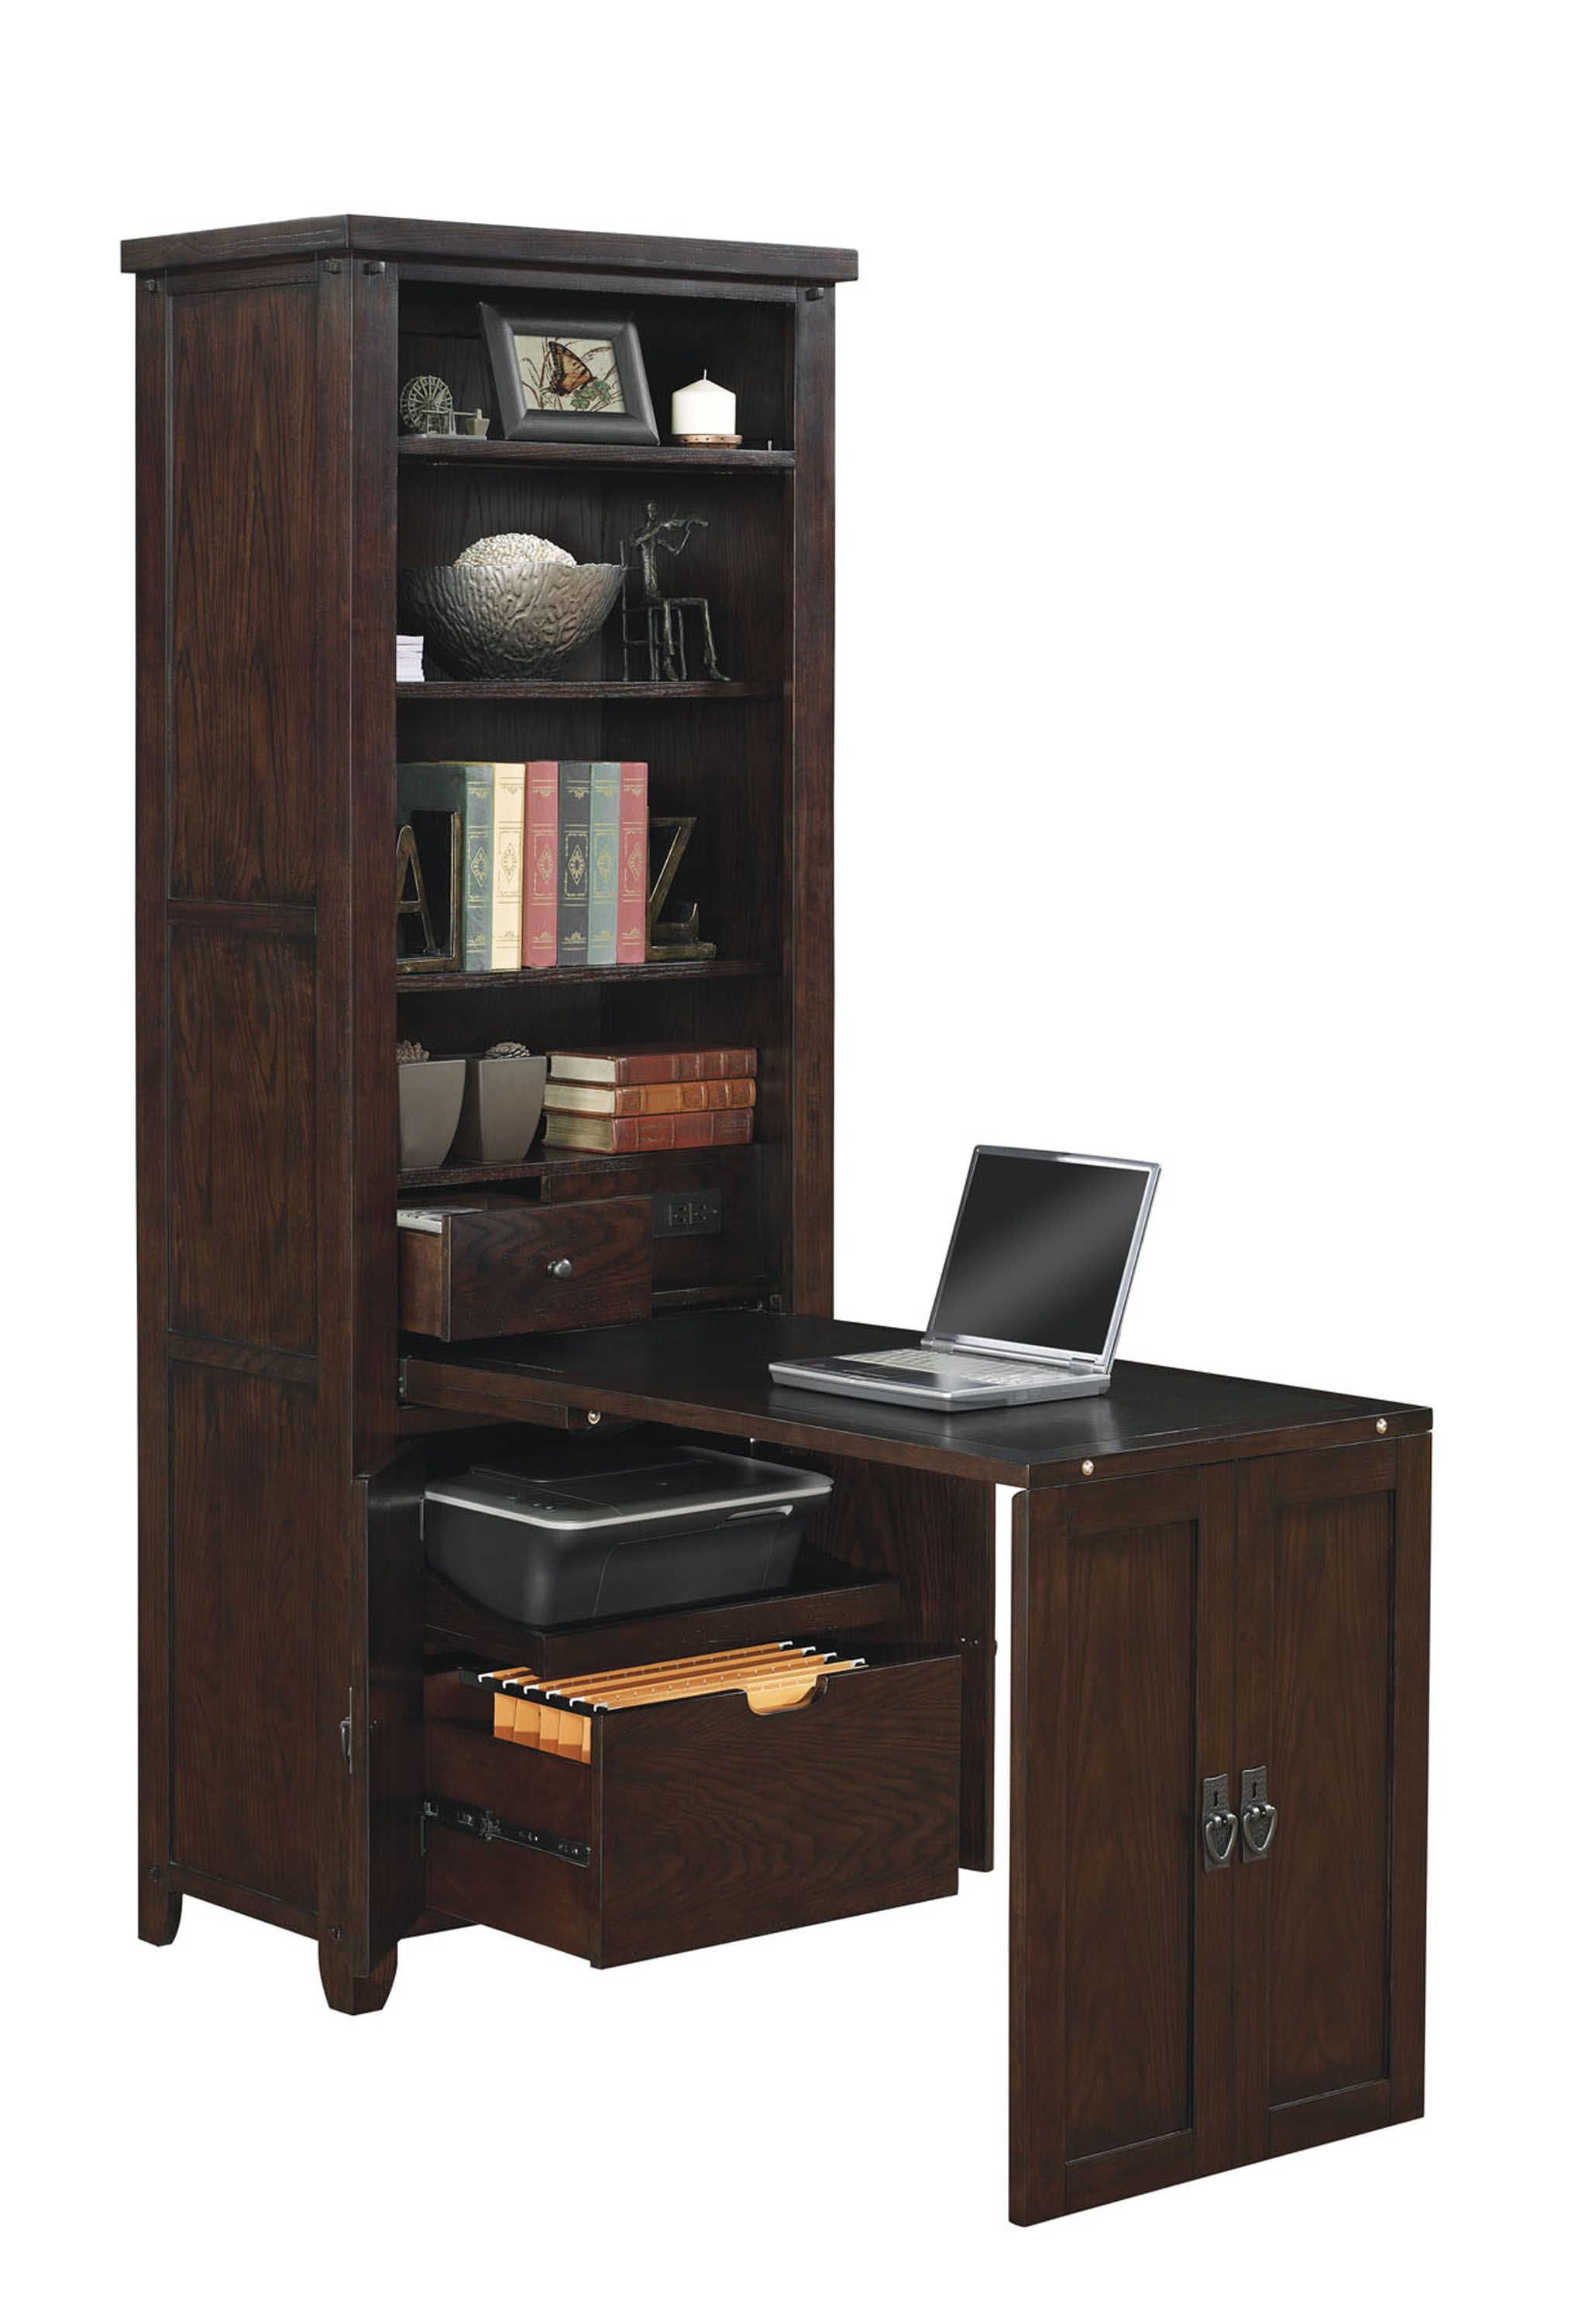 traditional hidden home office. Twin-Star International - Tresanti Murphy Desk For Home Office, Helps Conserve Space. It Is A Tall Traditional Arts And Crafts Style Cabinet With Carmel Hidden Office O